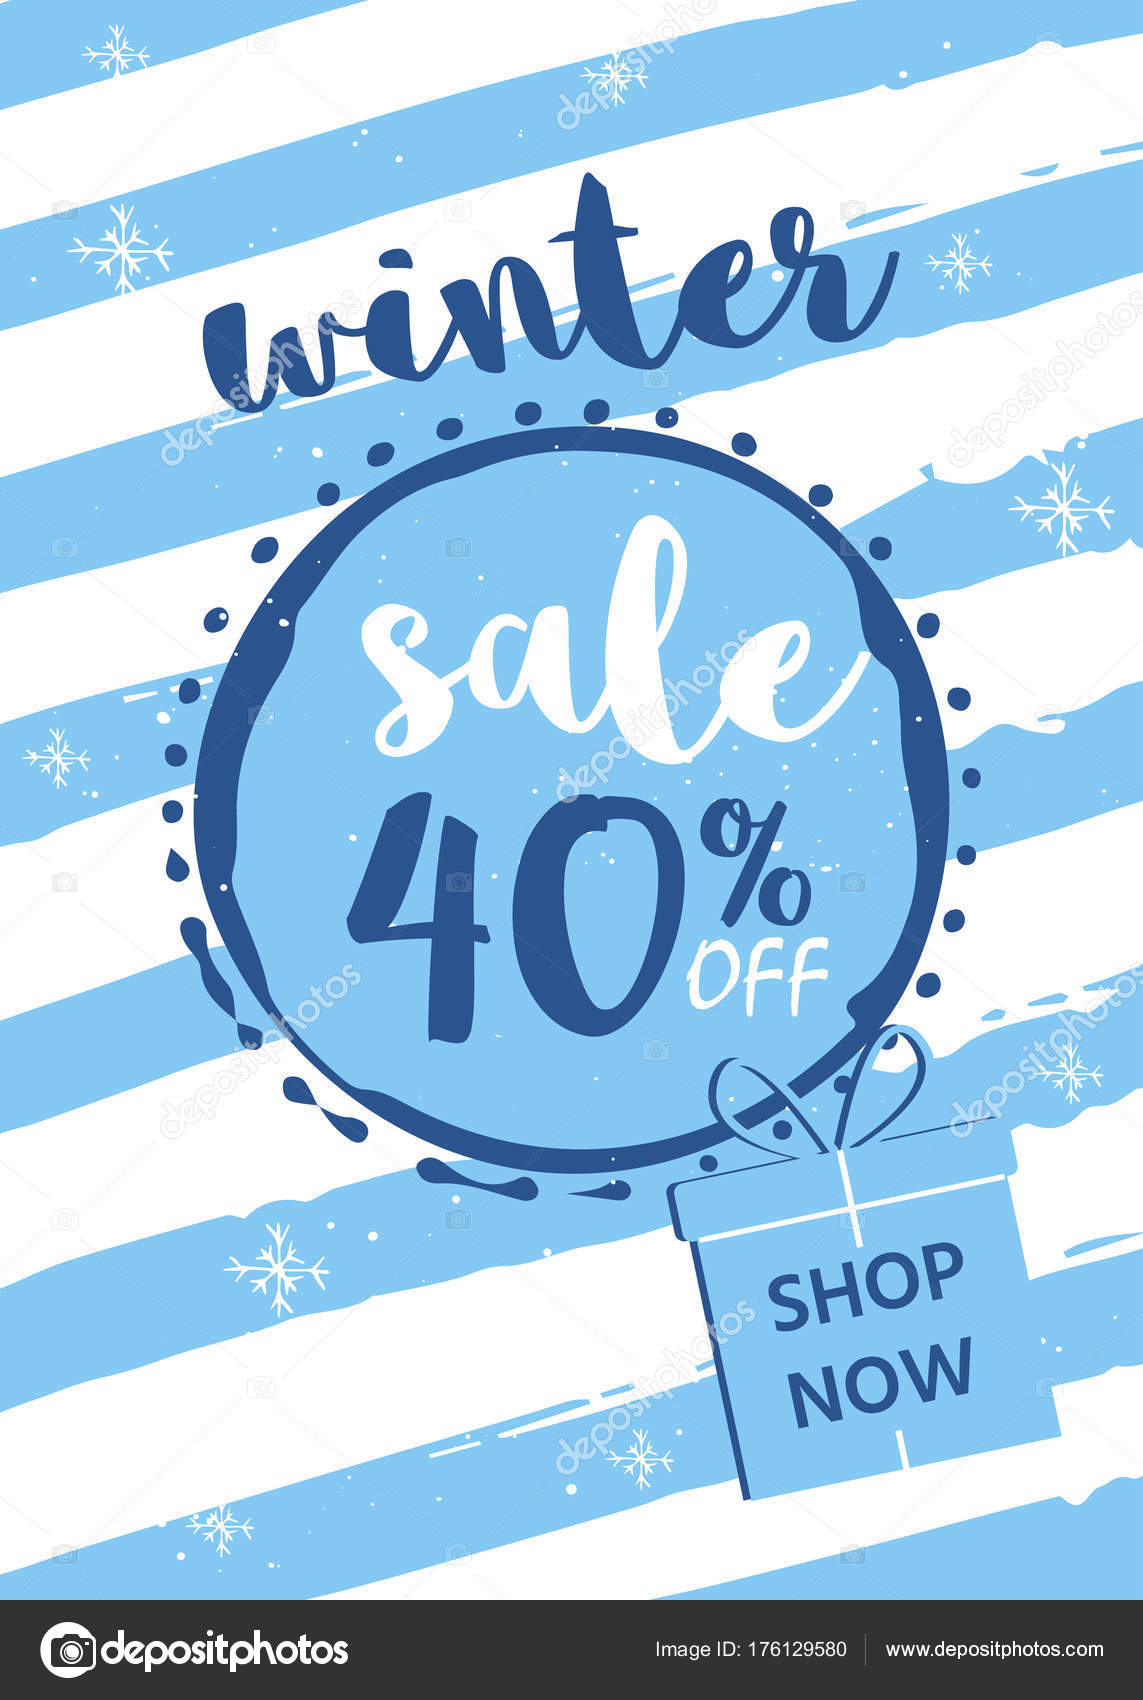 Winter Sale Banners Transformer Banners